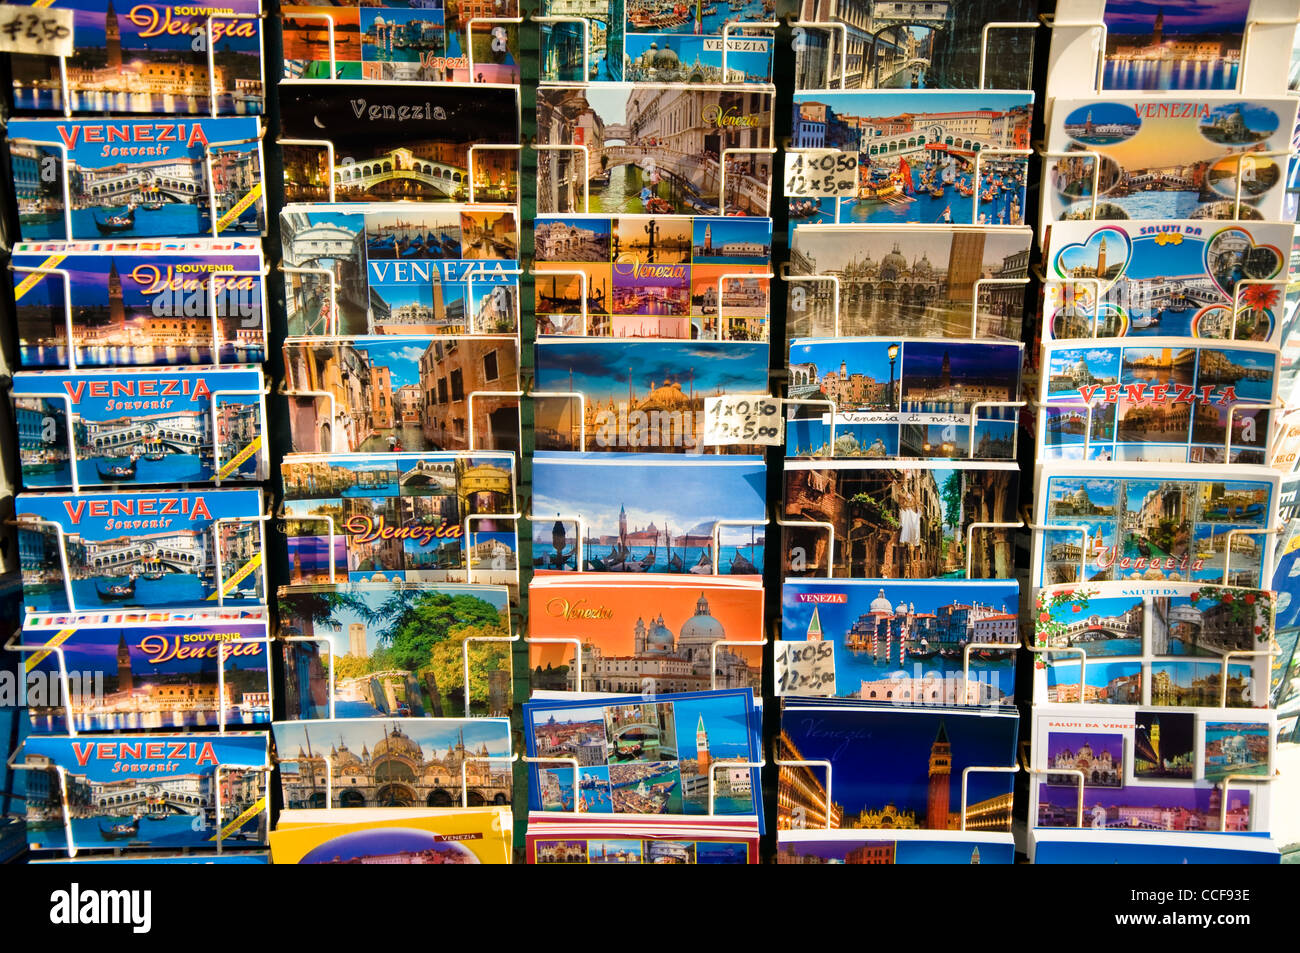 Postcards, Venice, Italy - Stock Image